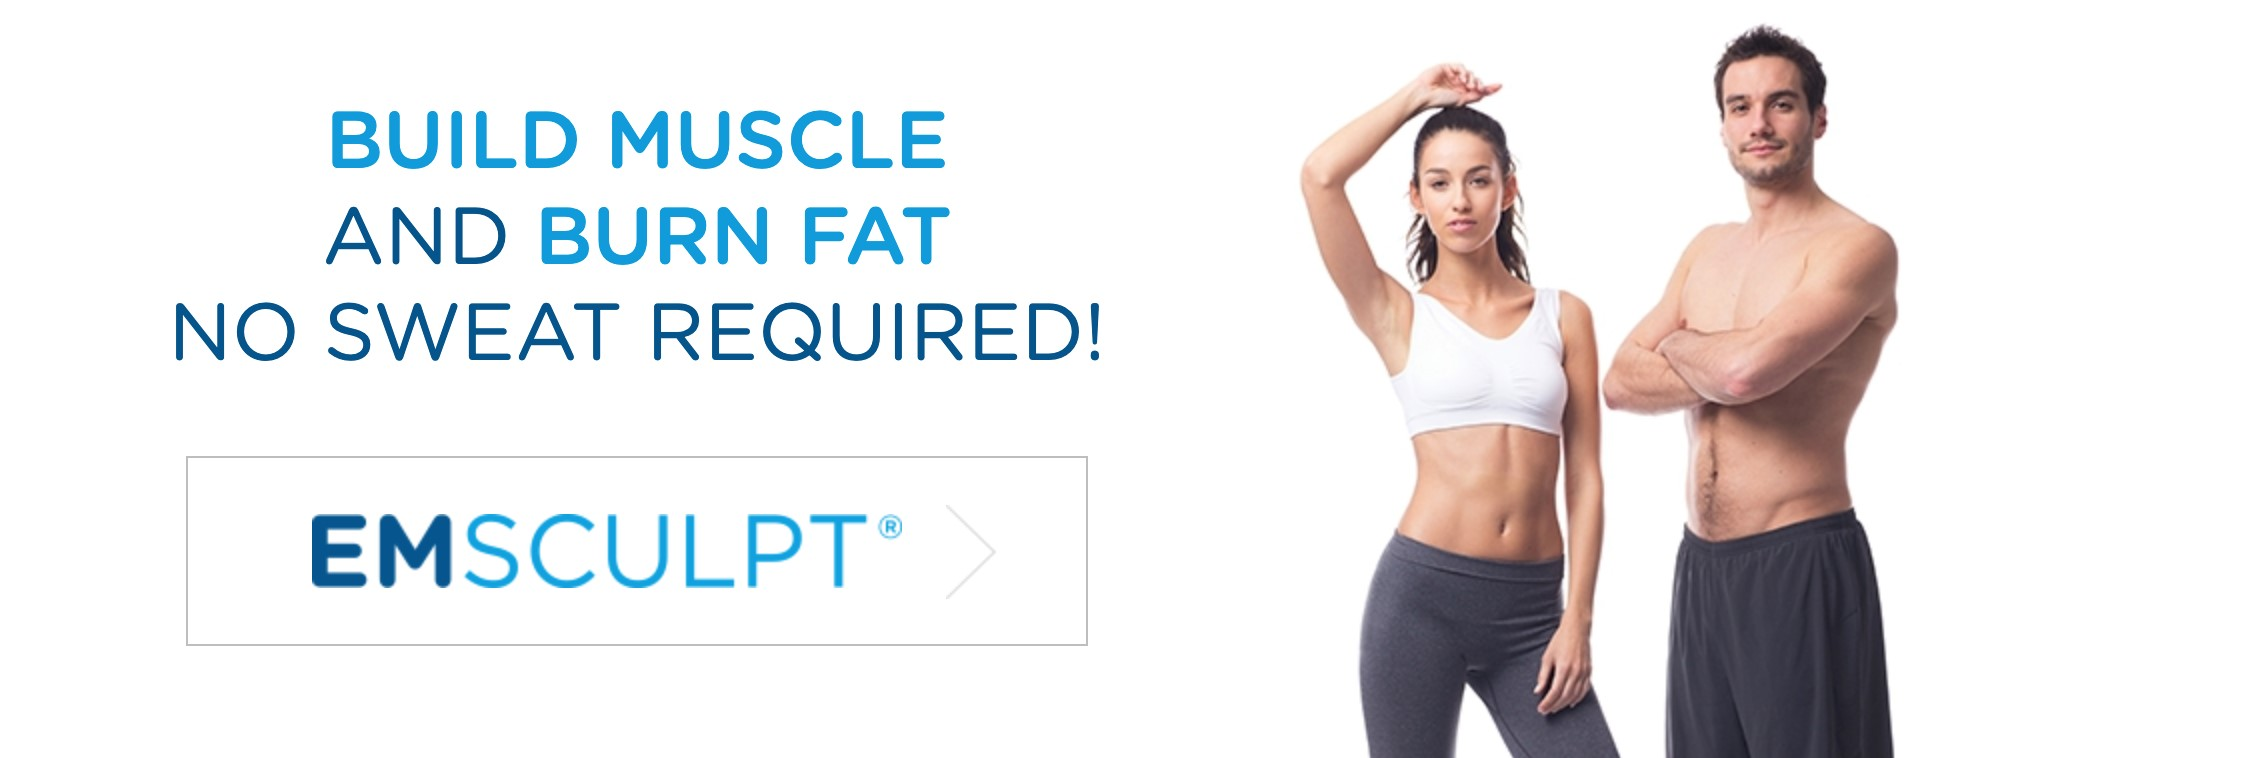 BTL EMSCULPT® to build muscle and burn fat